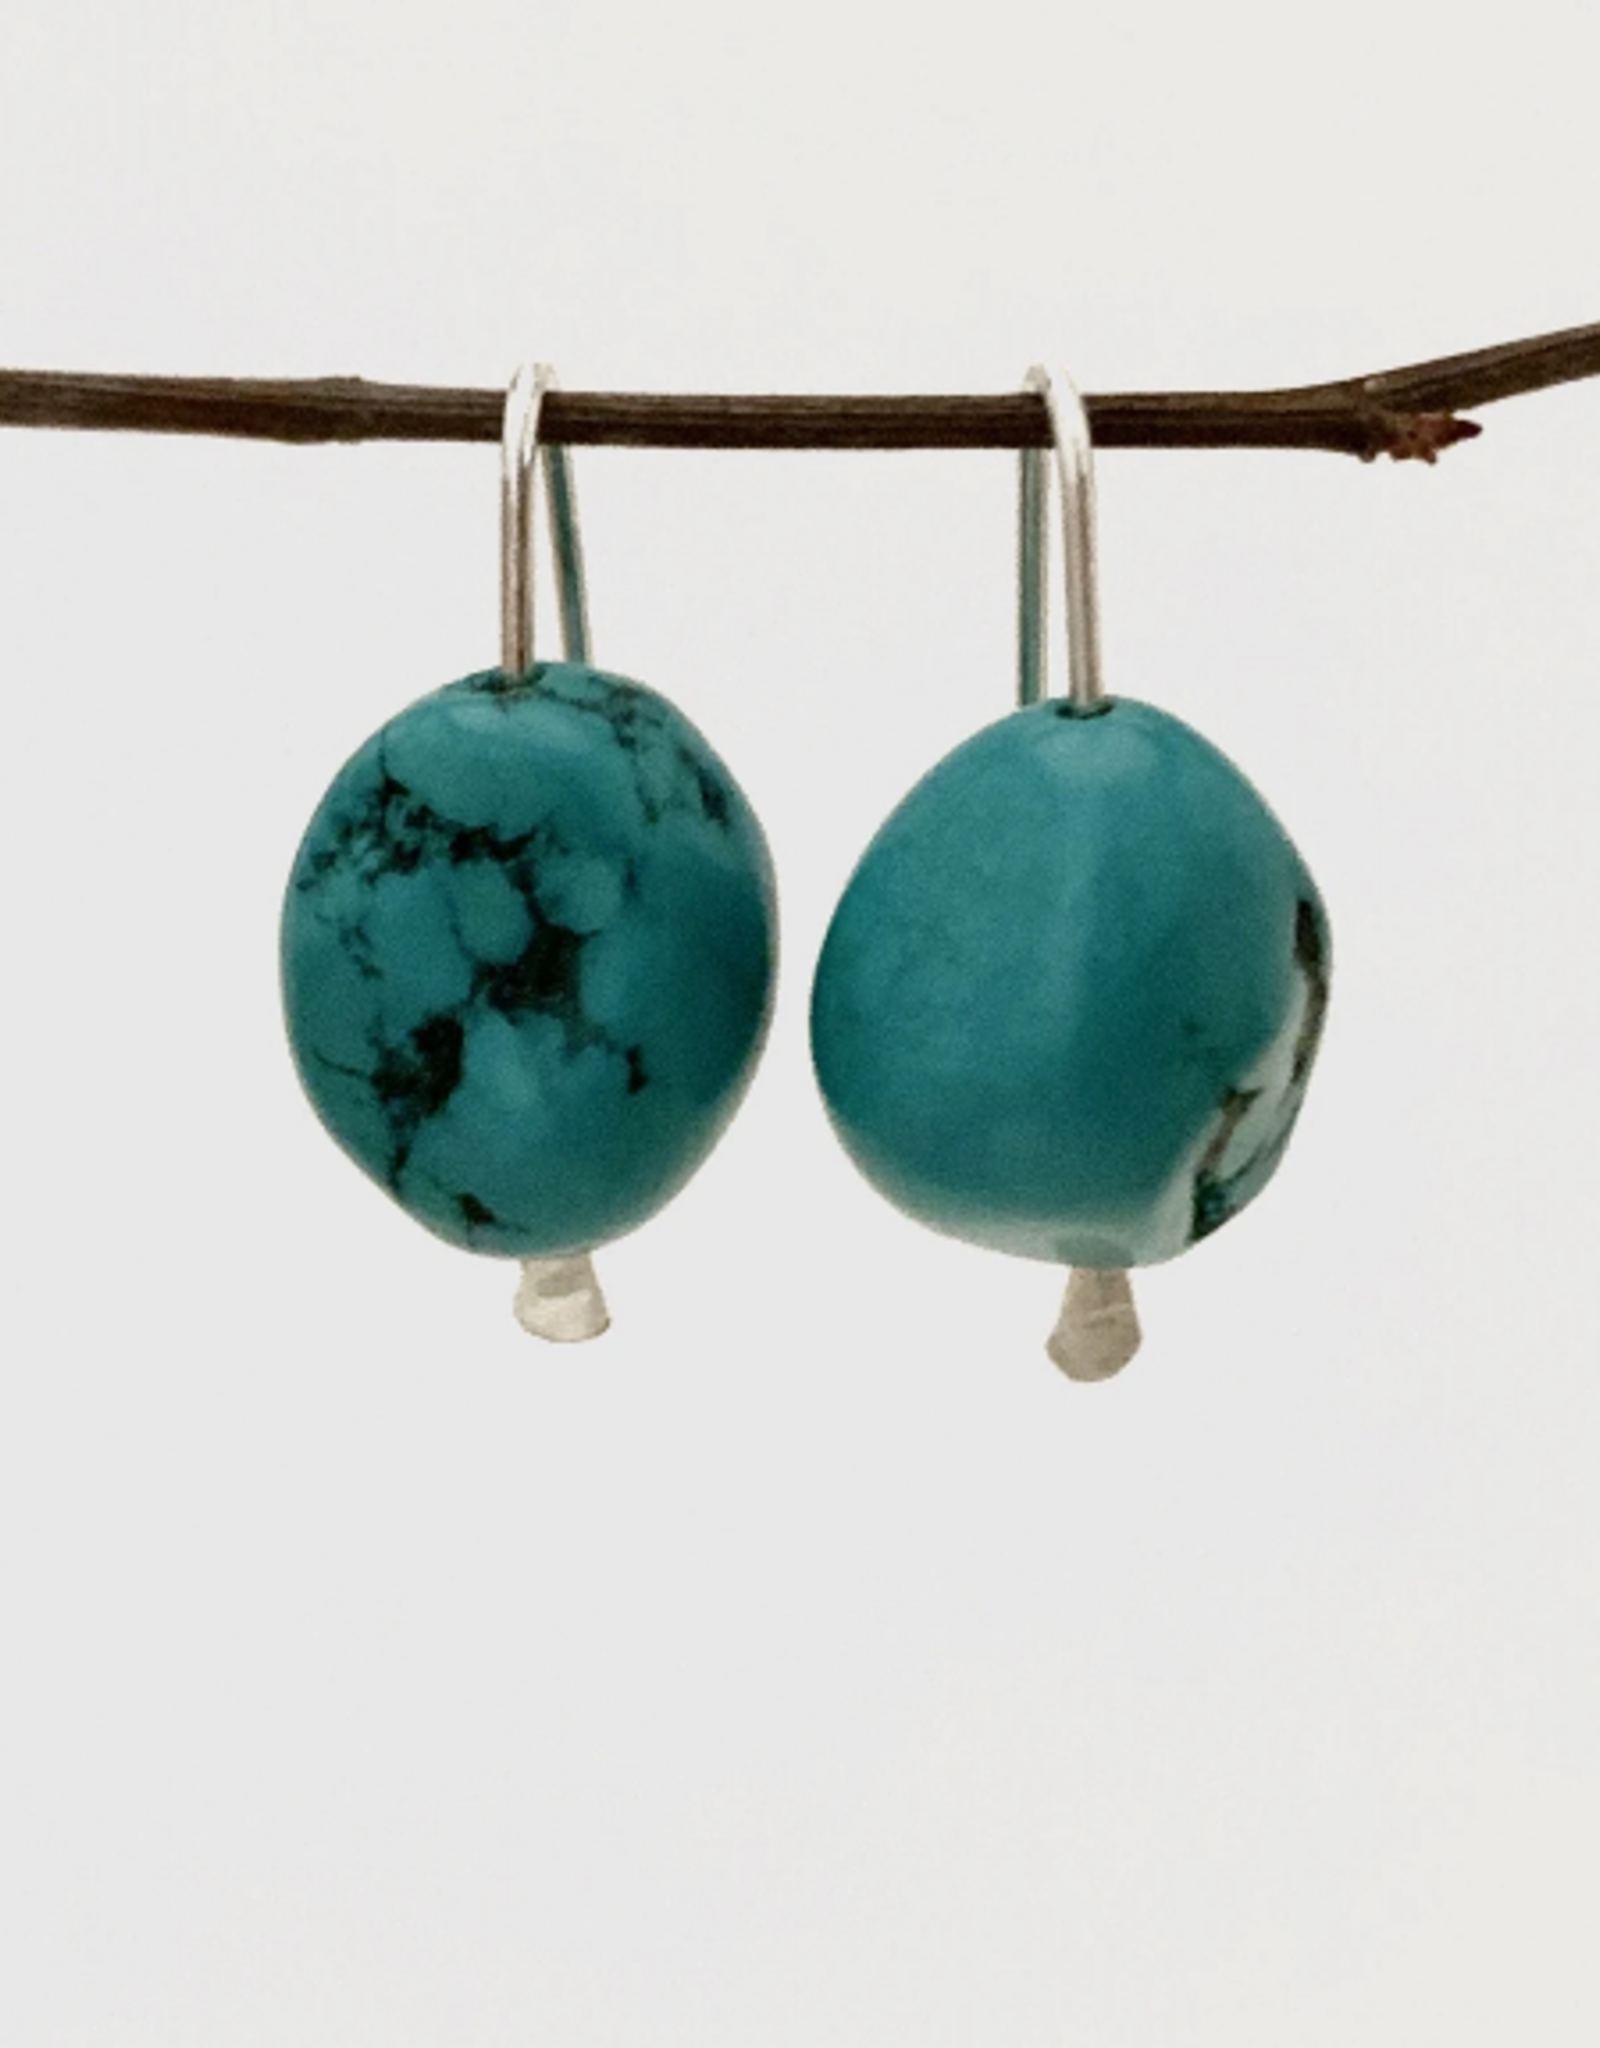 EARRING ROBBIE HOOK WITH LARGE TURQUOISE STONE SILVER